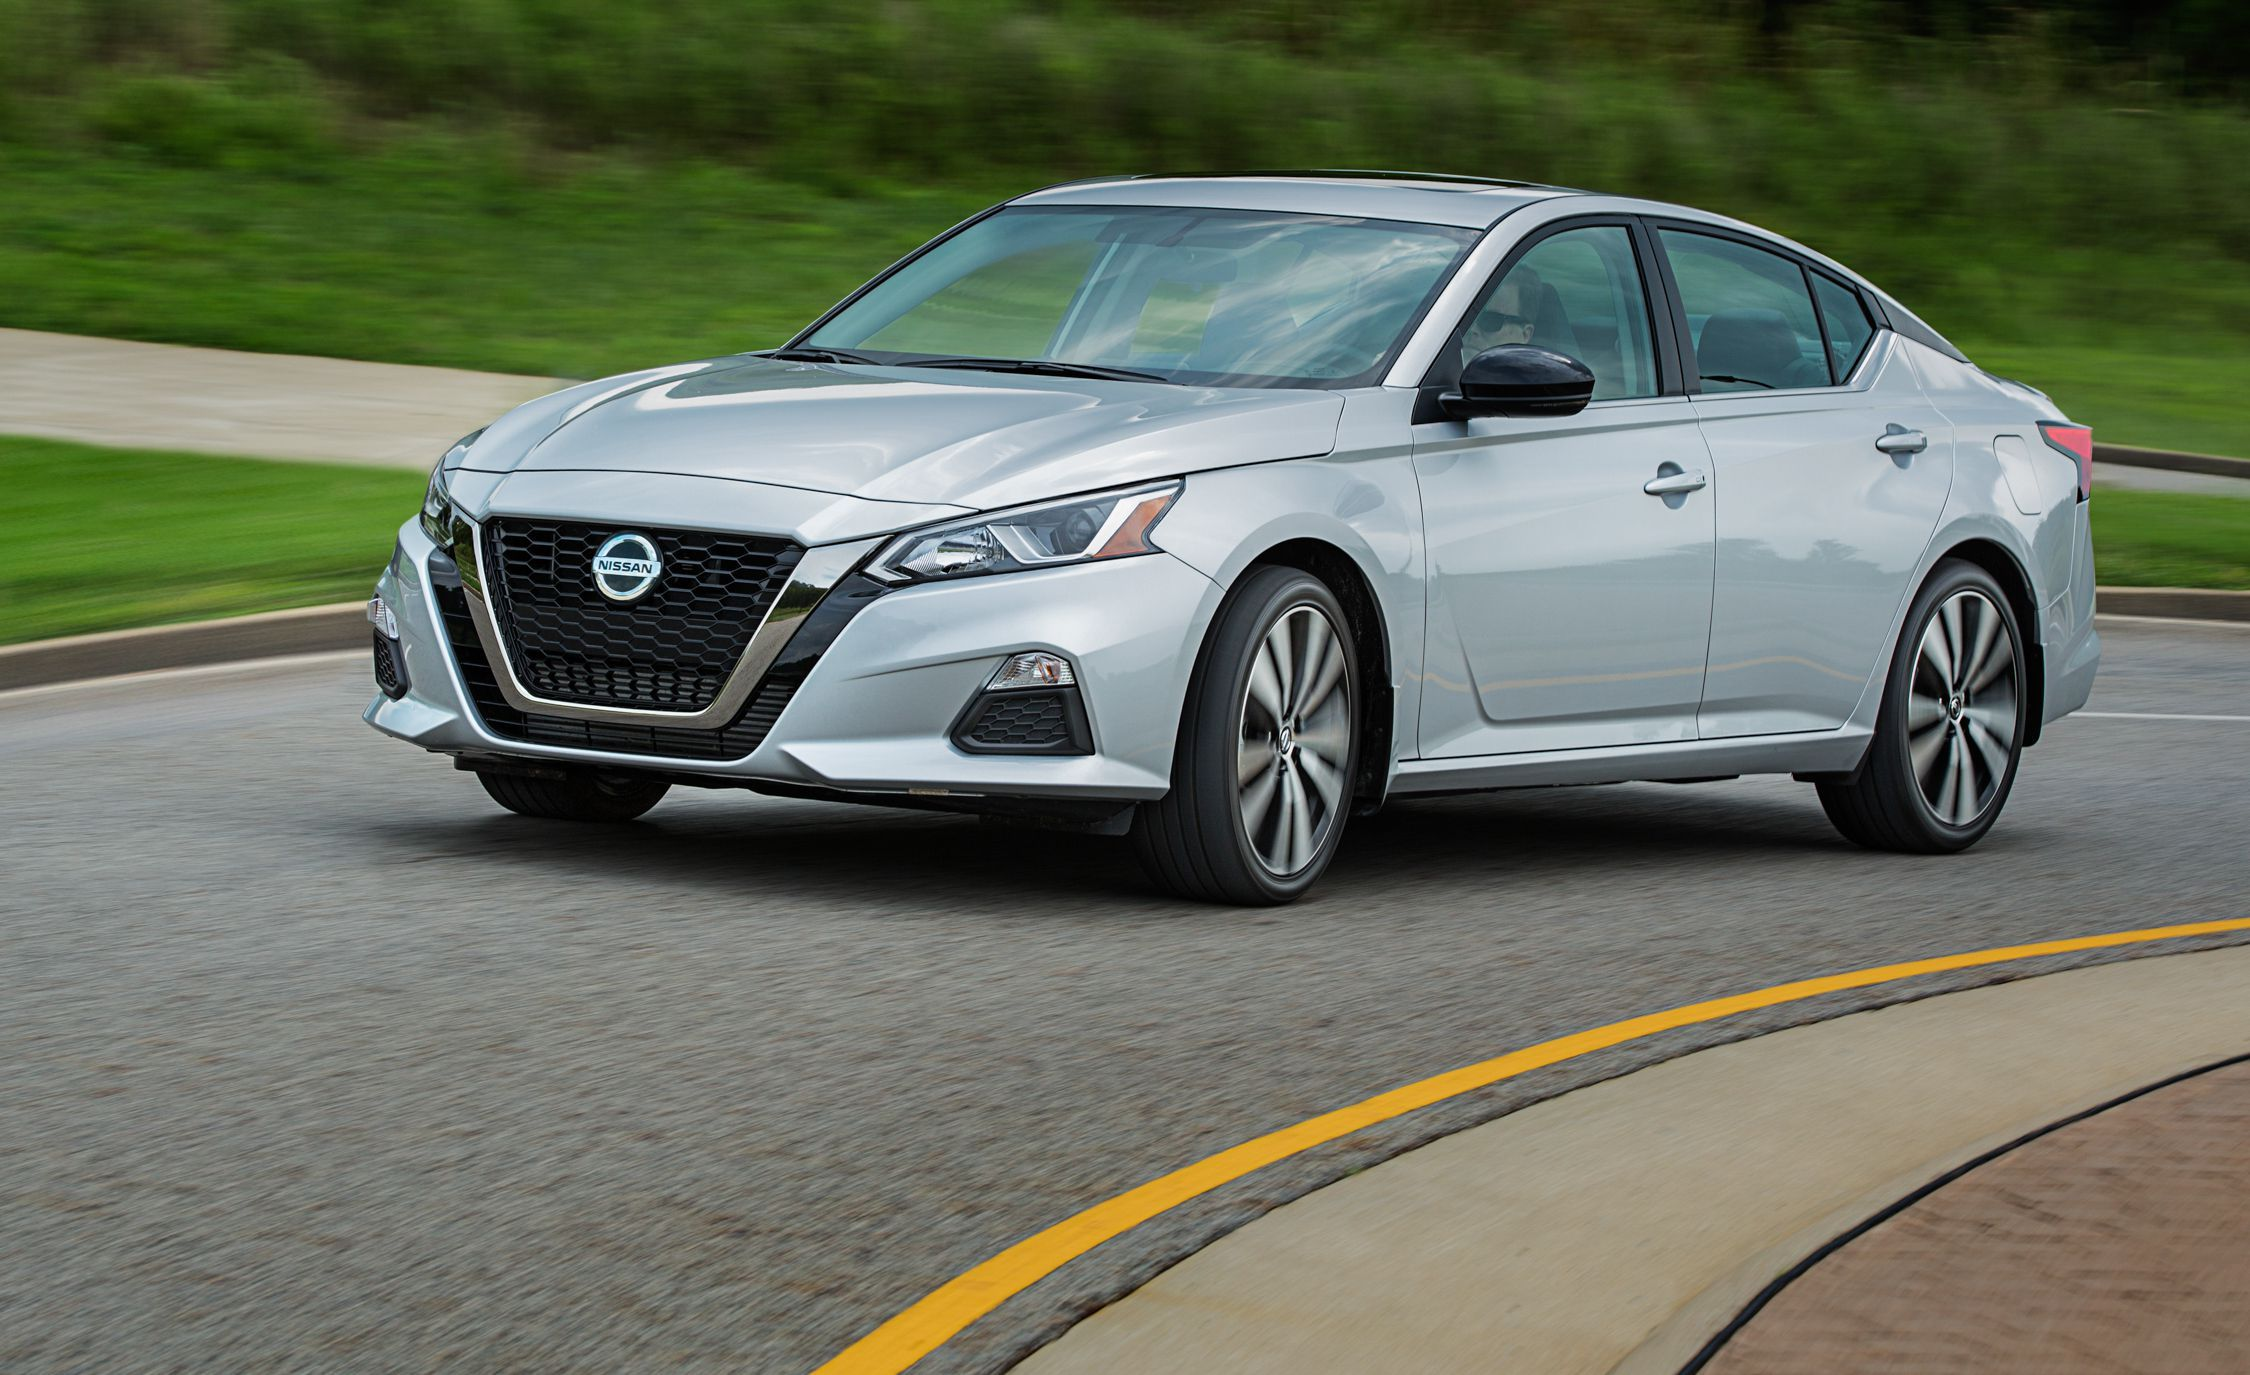 hight resolution of 2020 nissan altima review pricing and specs 2006 nissan altima 2 5 engine diagram as well cadillac cts 2007 engine